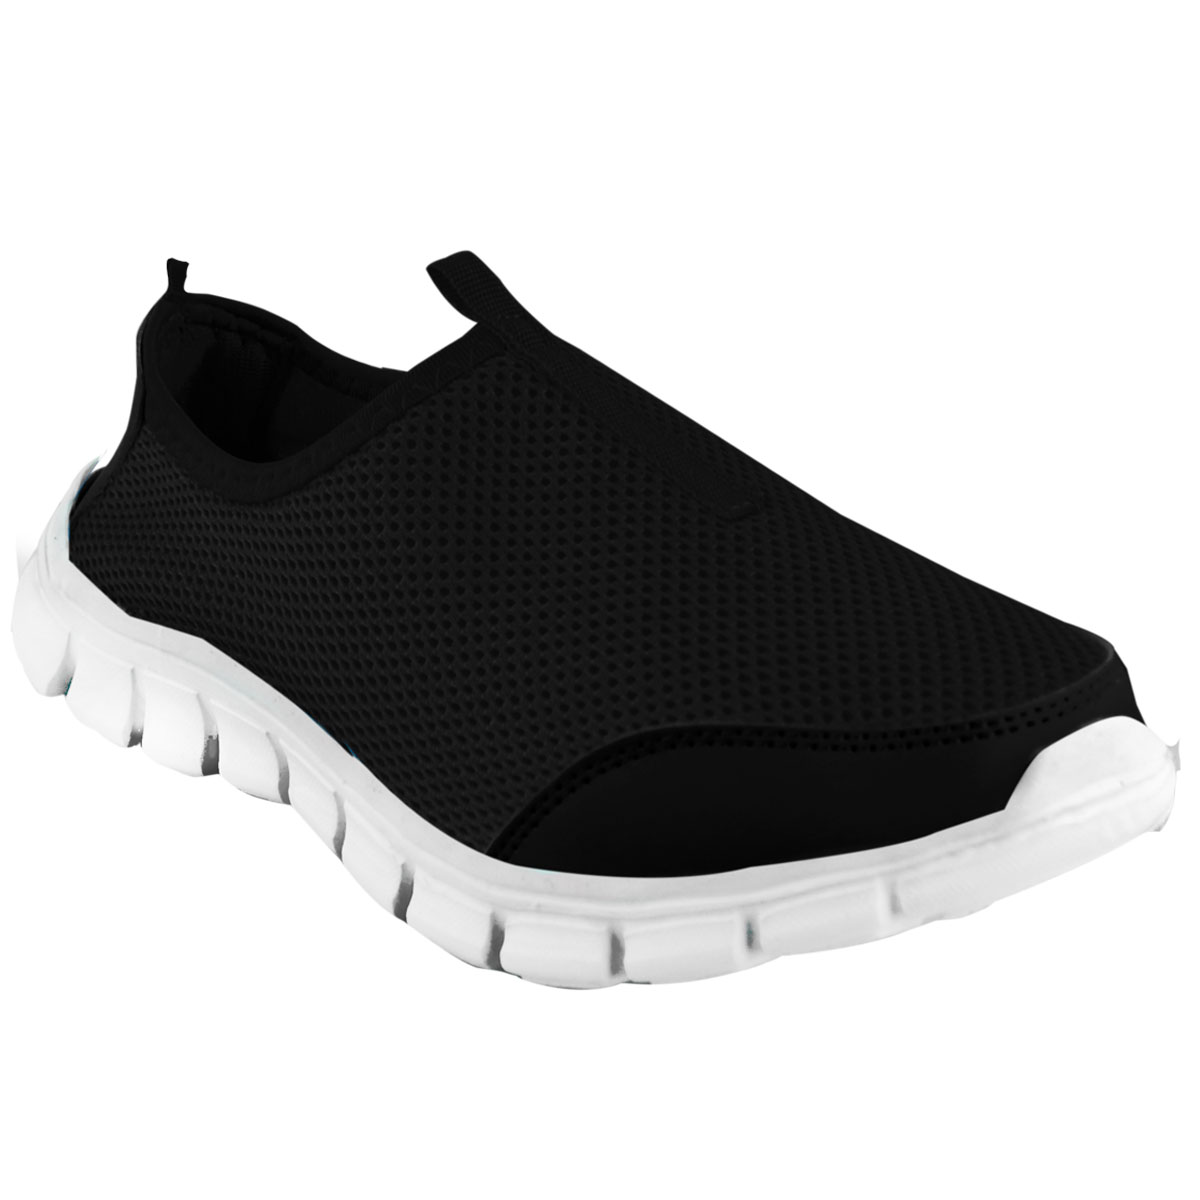 WOMENS LADIES PUMPS COMFORT WALKING TRAINERS SPORTS CASUAL HOLIDAY SHOES SIZE